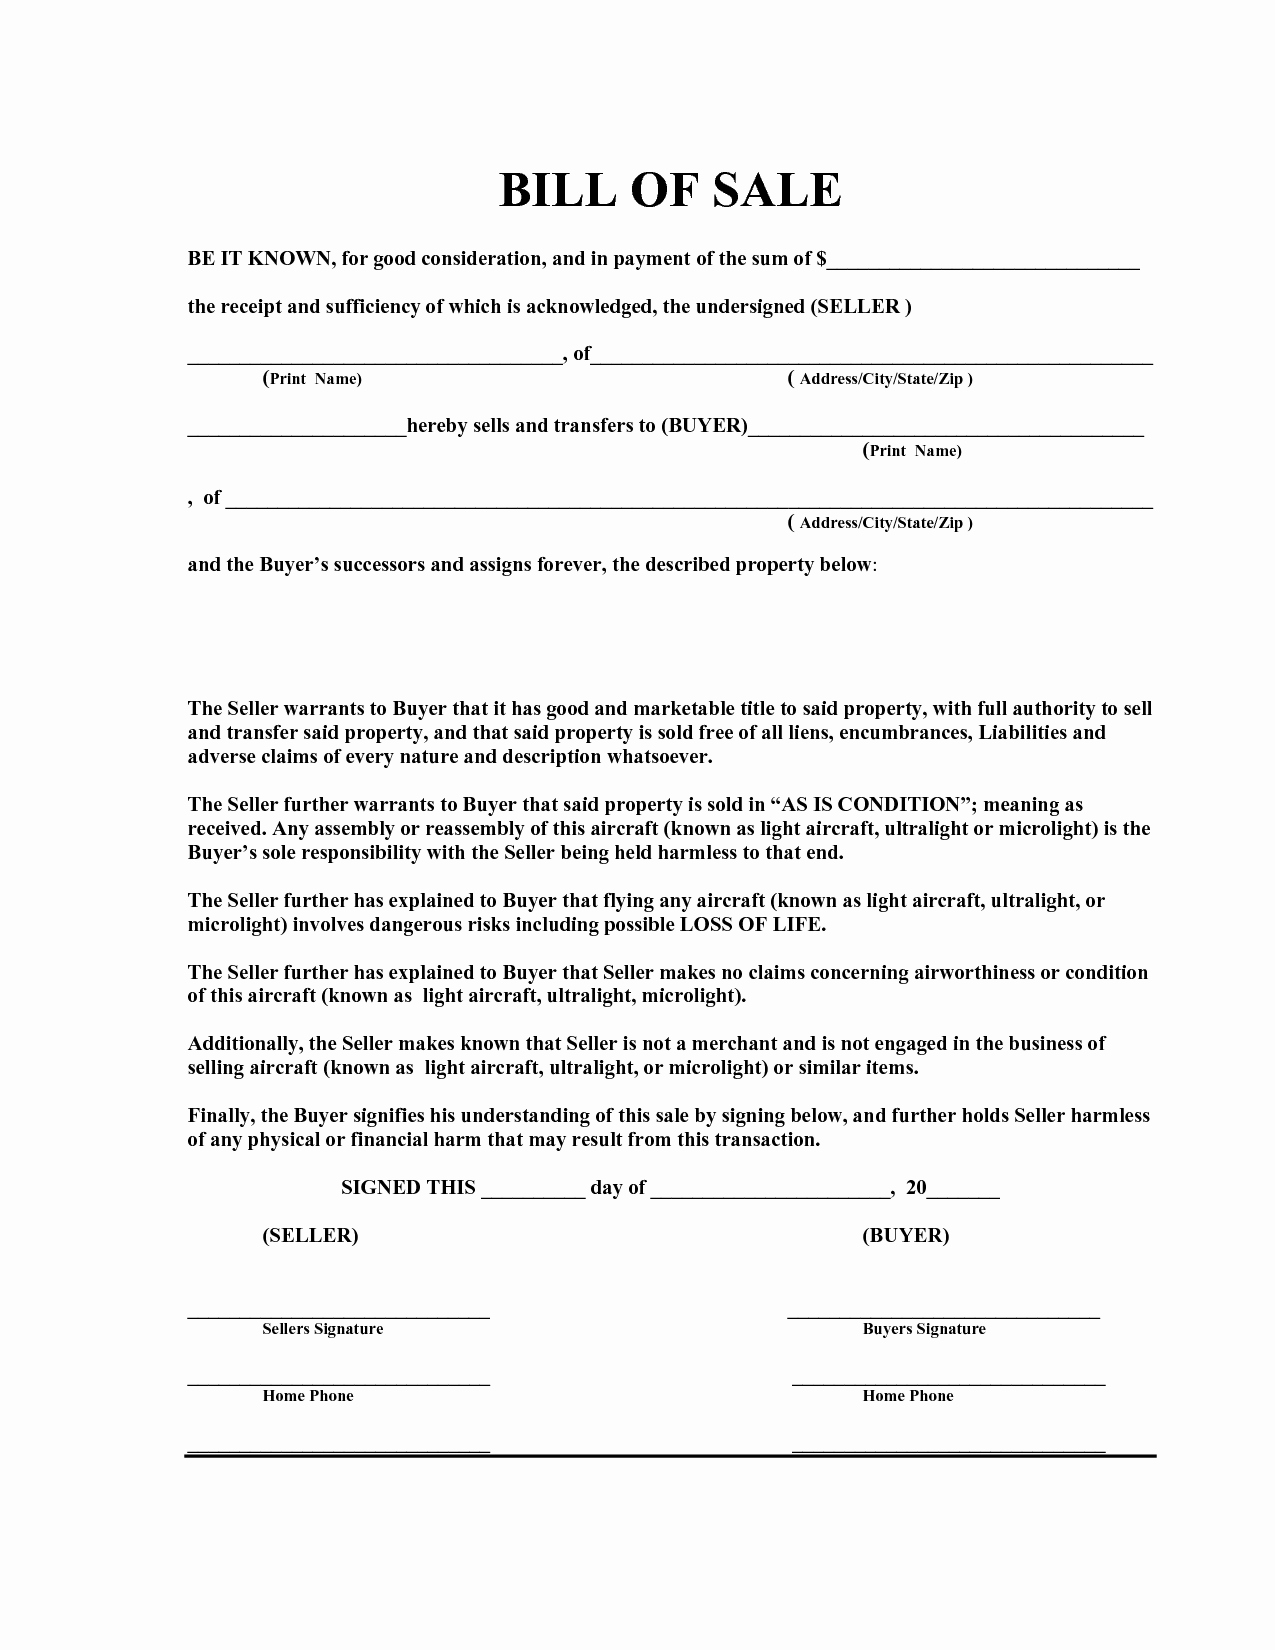 Example Car Bill Of Sale Beautiful Bill Sale for Land Simple Car Anuvratinfo